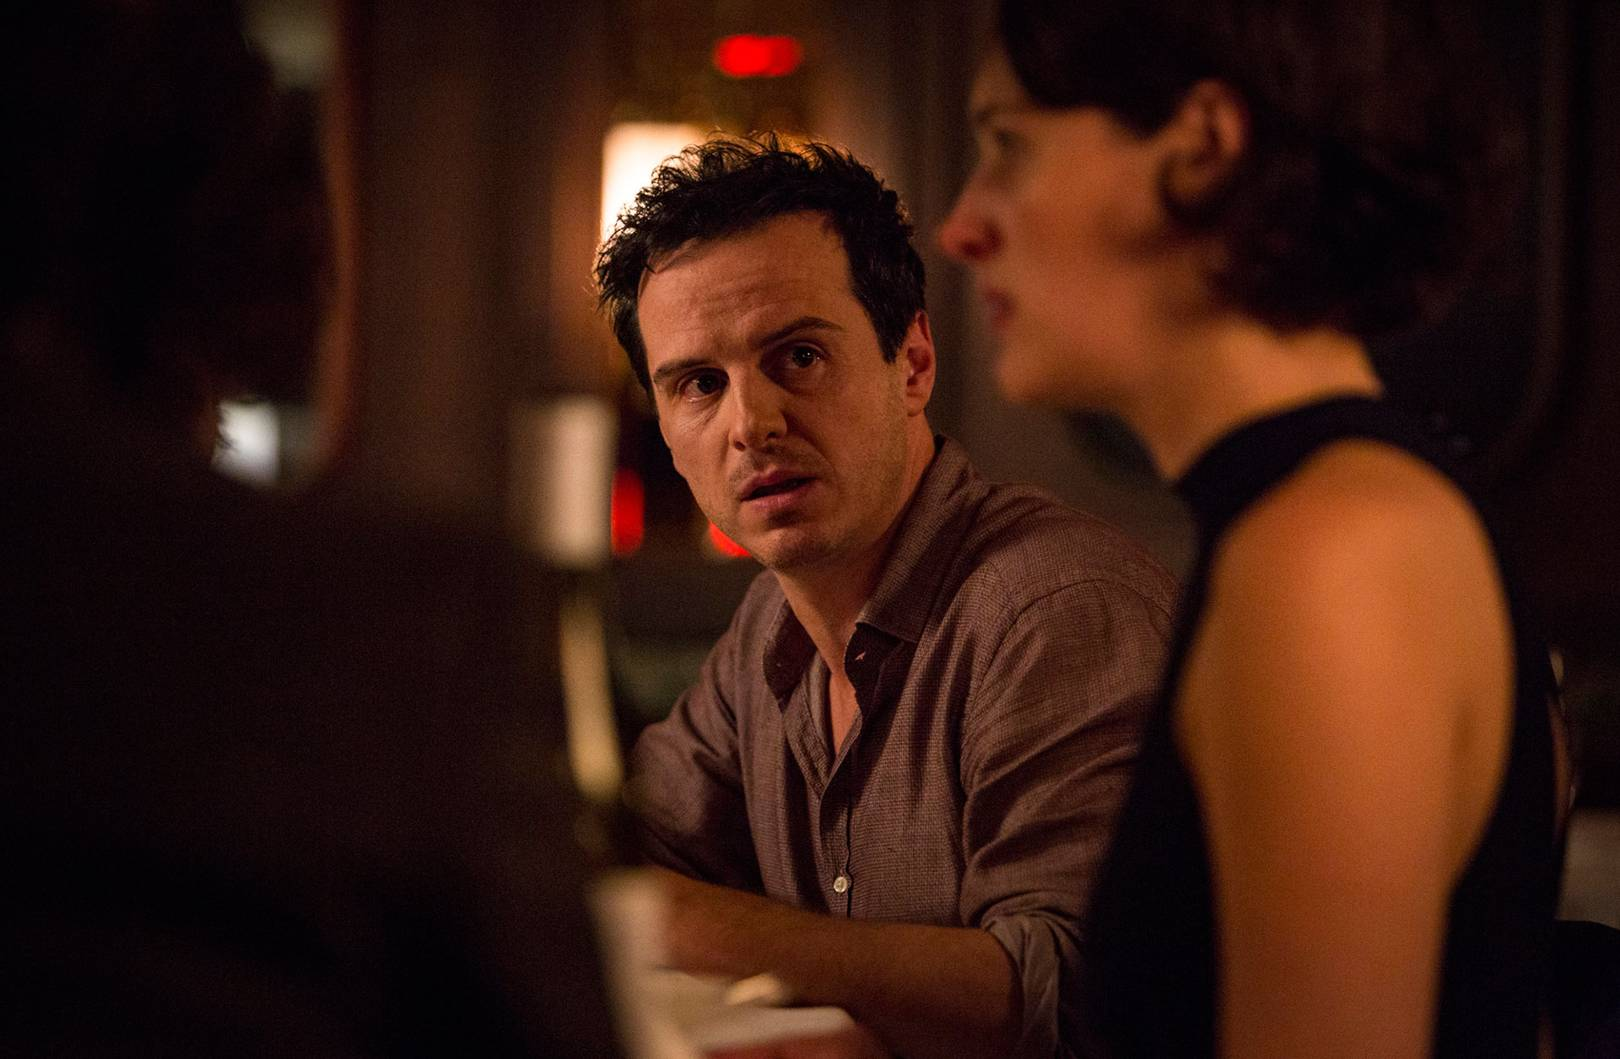 In foto, Phoebe Waller-Bridge e Andrew Scott in una scena della serie Fleabag